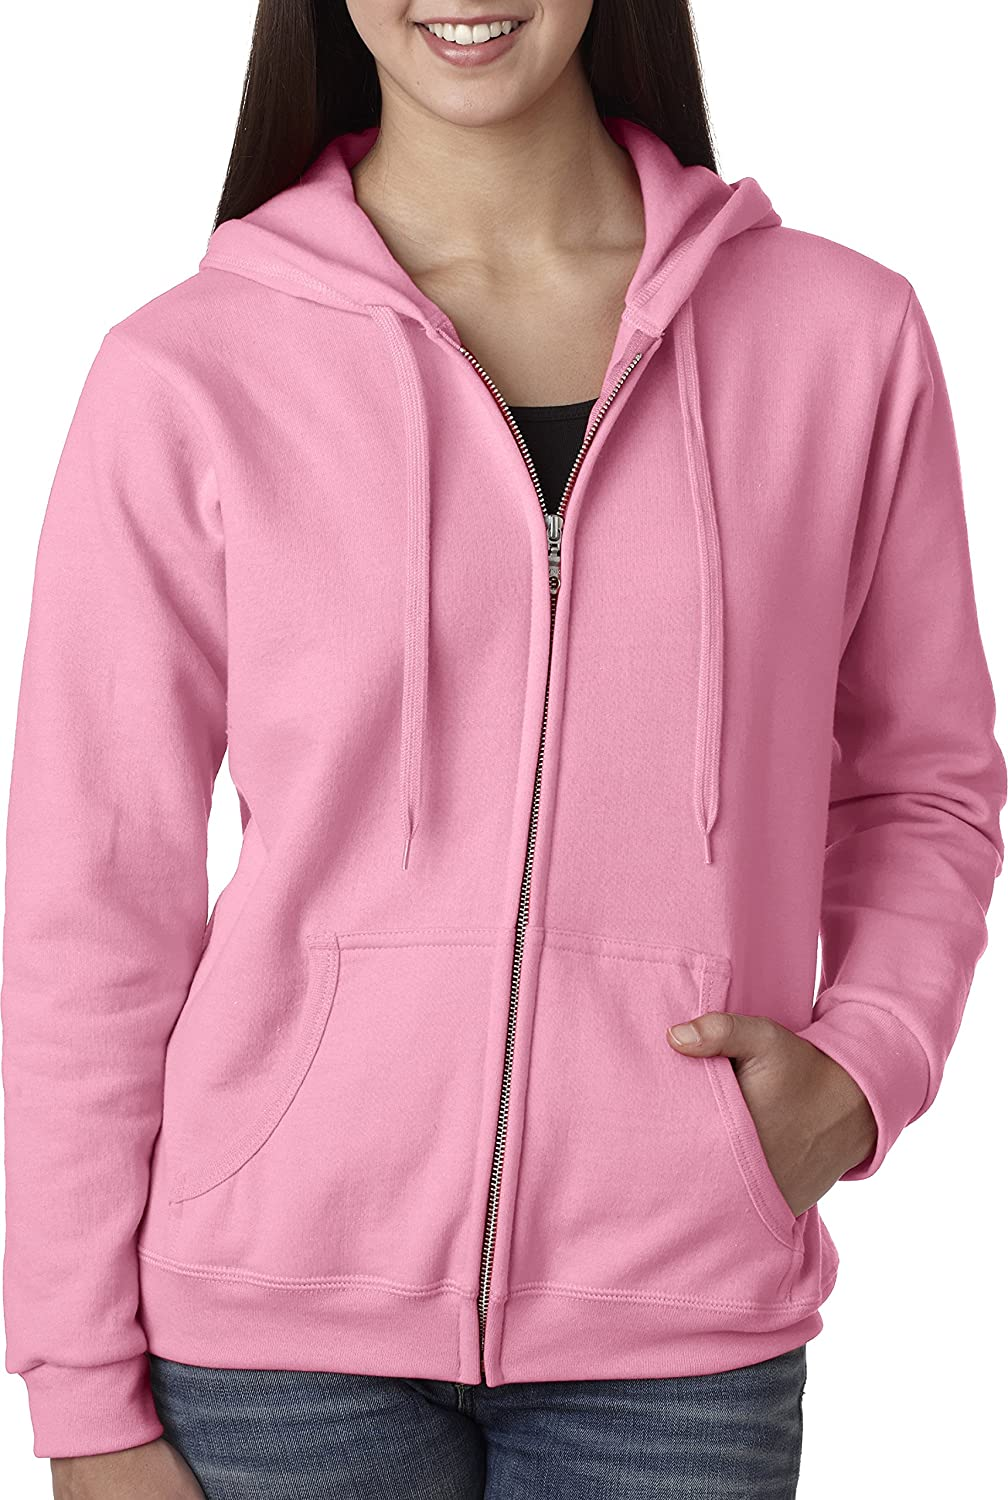 Gildan Women's Heavy Blend Full-Zip Hooded Sweatshirt at Amazon ...